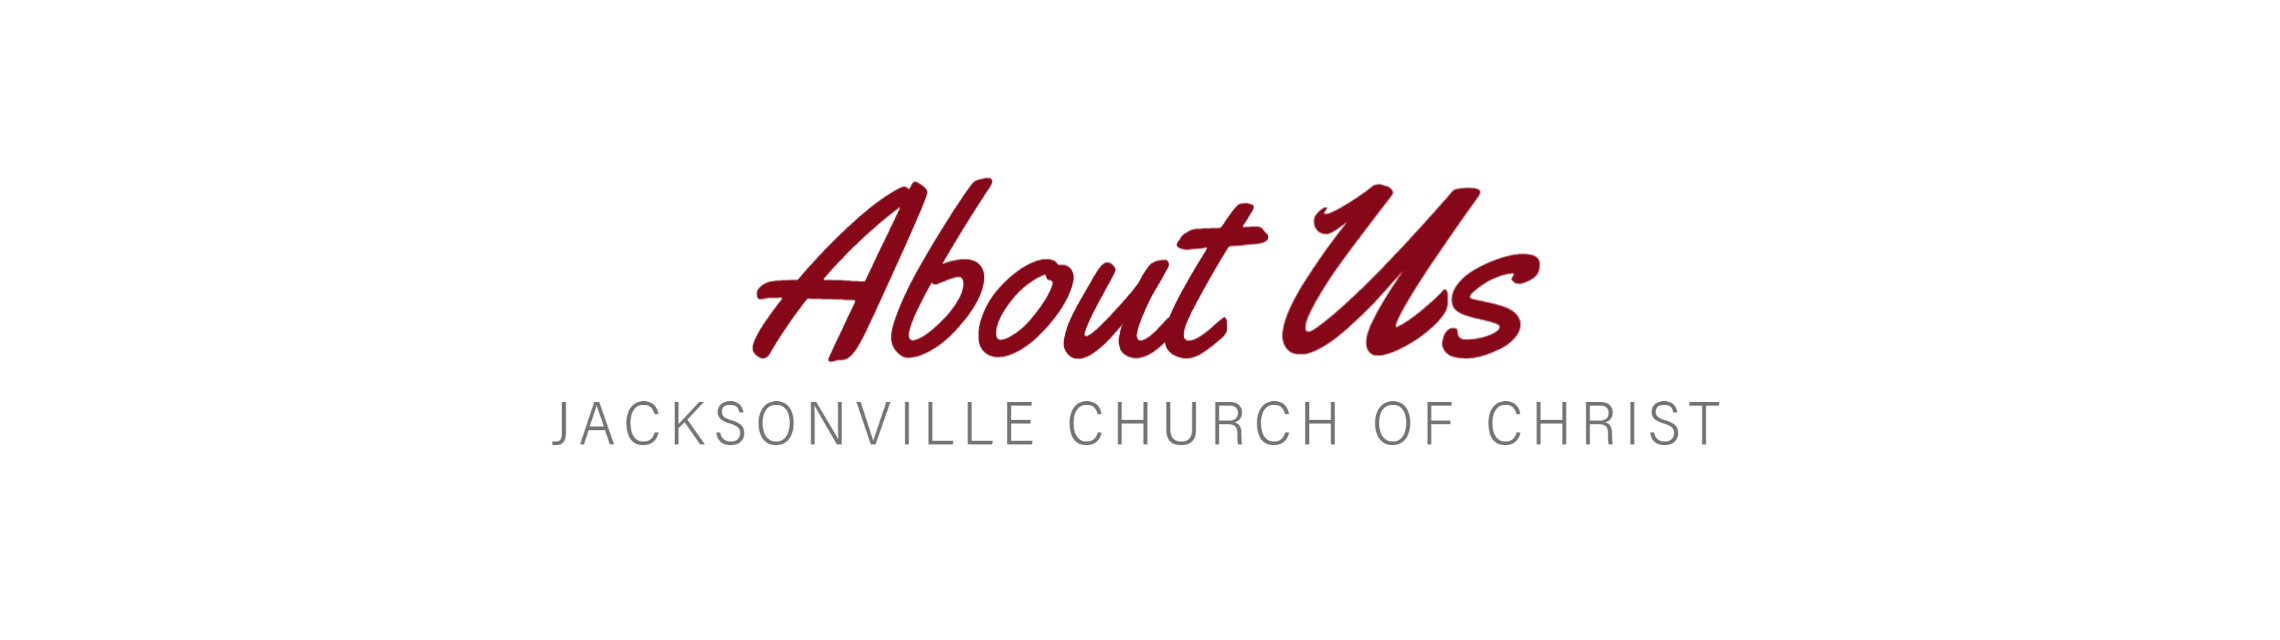 About the Jacksonville Church of Christ